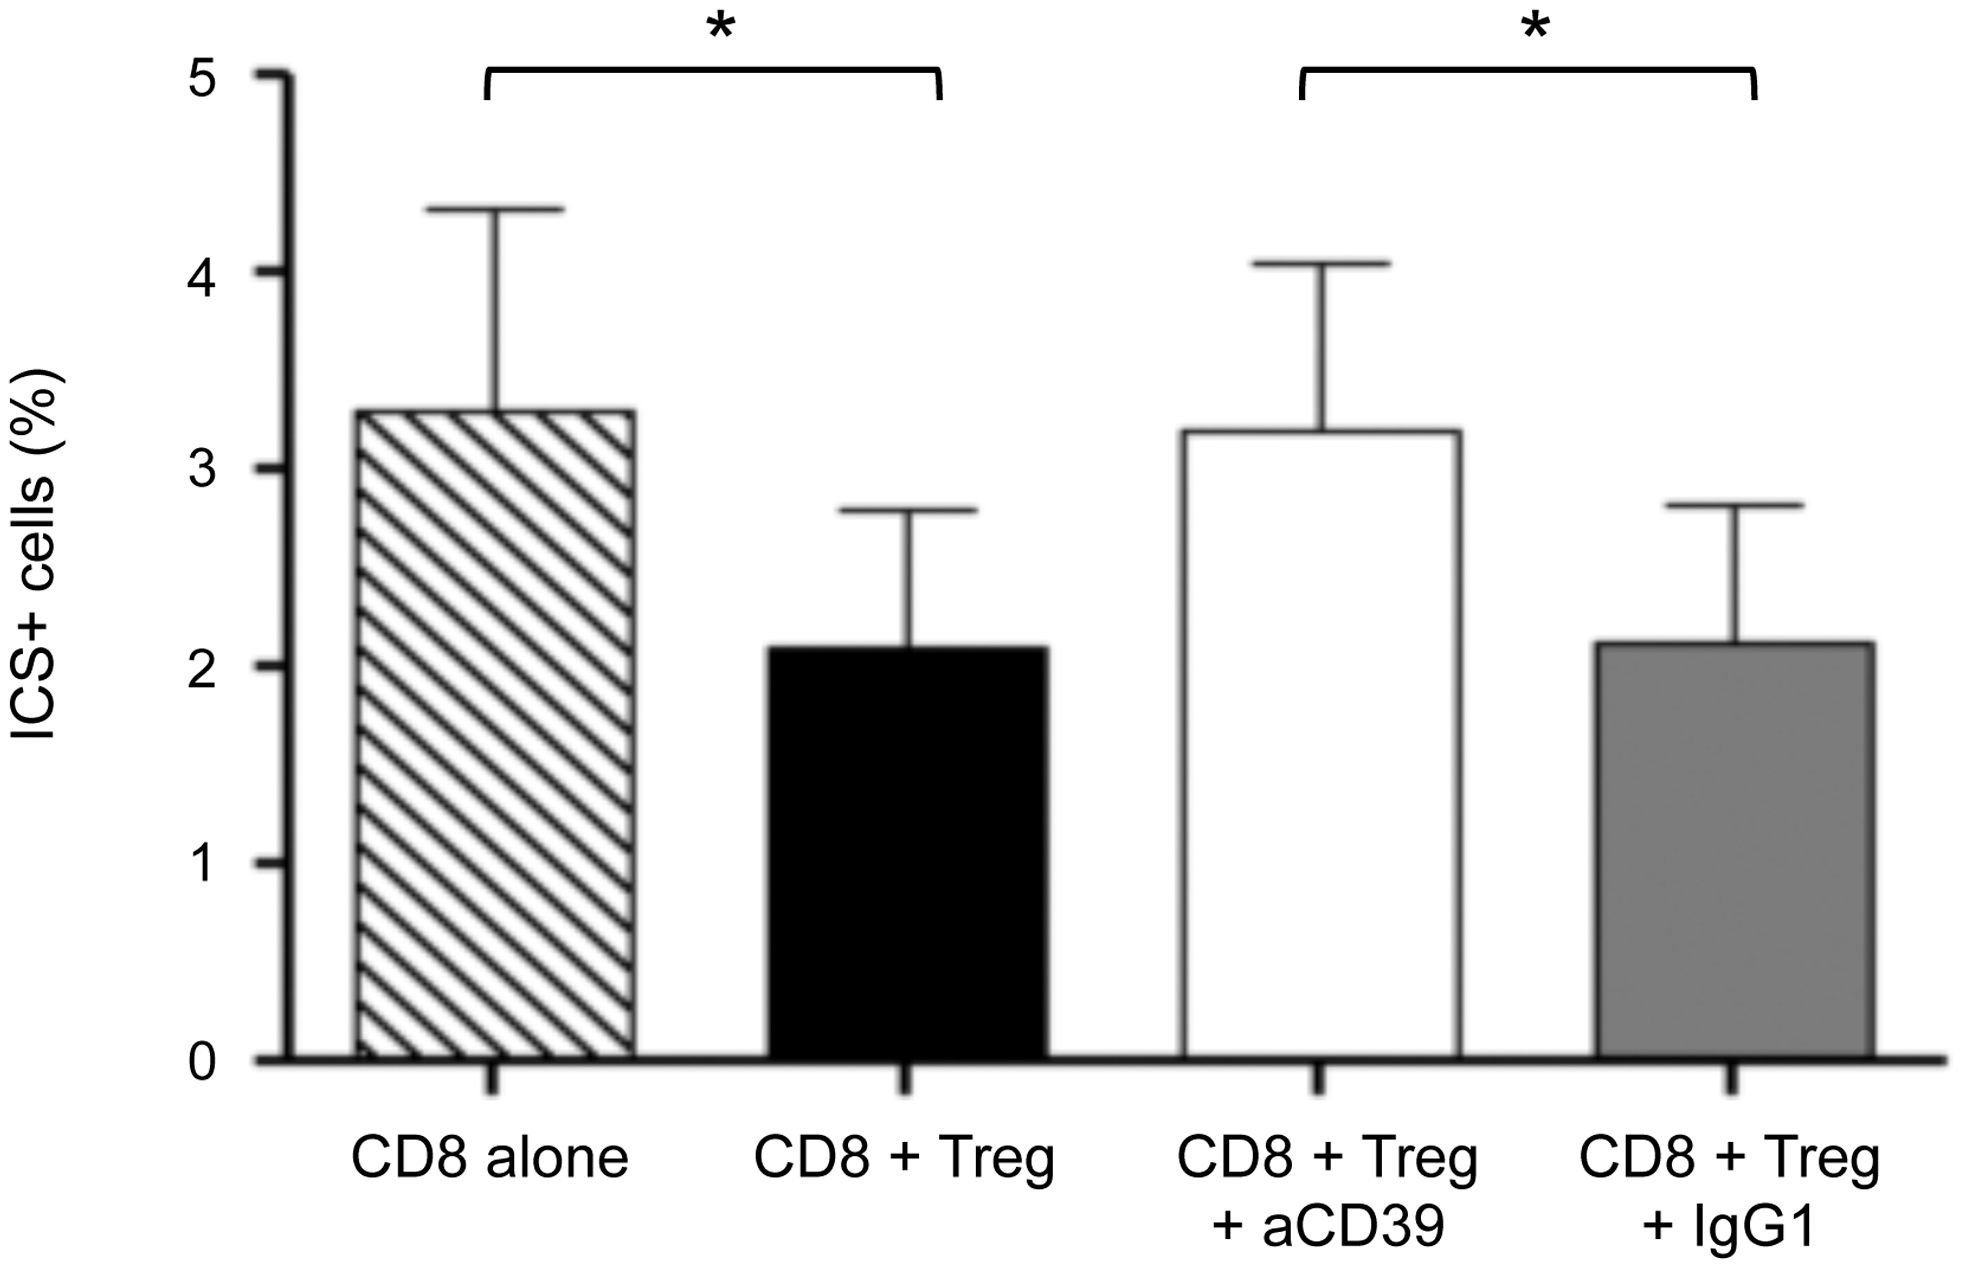 CD39 blocking mAb reverses the suppressive effect of Treg on the cytokine production of Gag-stimulated CD8+ T cells.